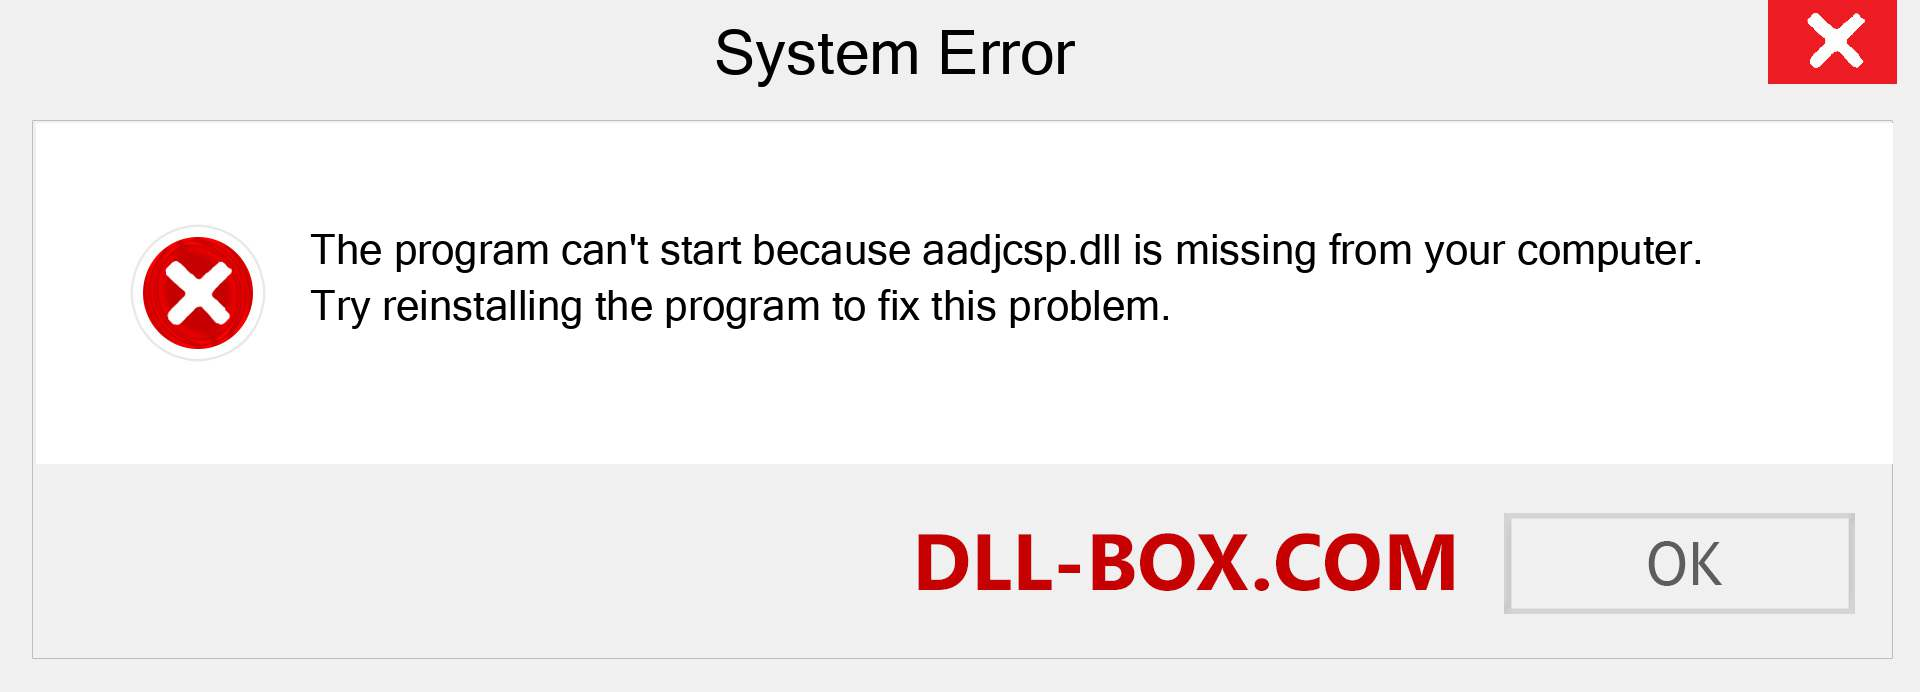 aadjcsp.dll file is missing?. Download for Windows 7, 8, 10 - Fix  aadjcsp dll Missing Error on Windows, photos, images